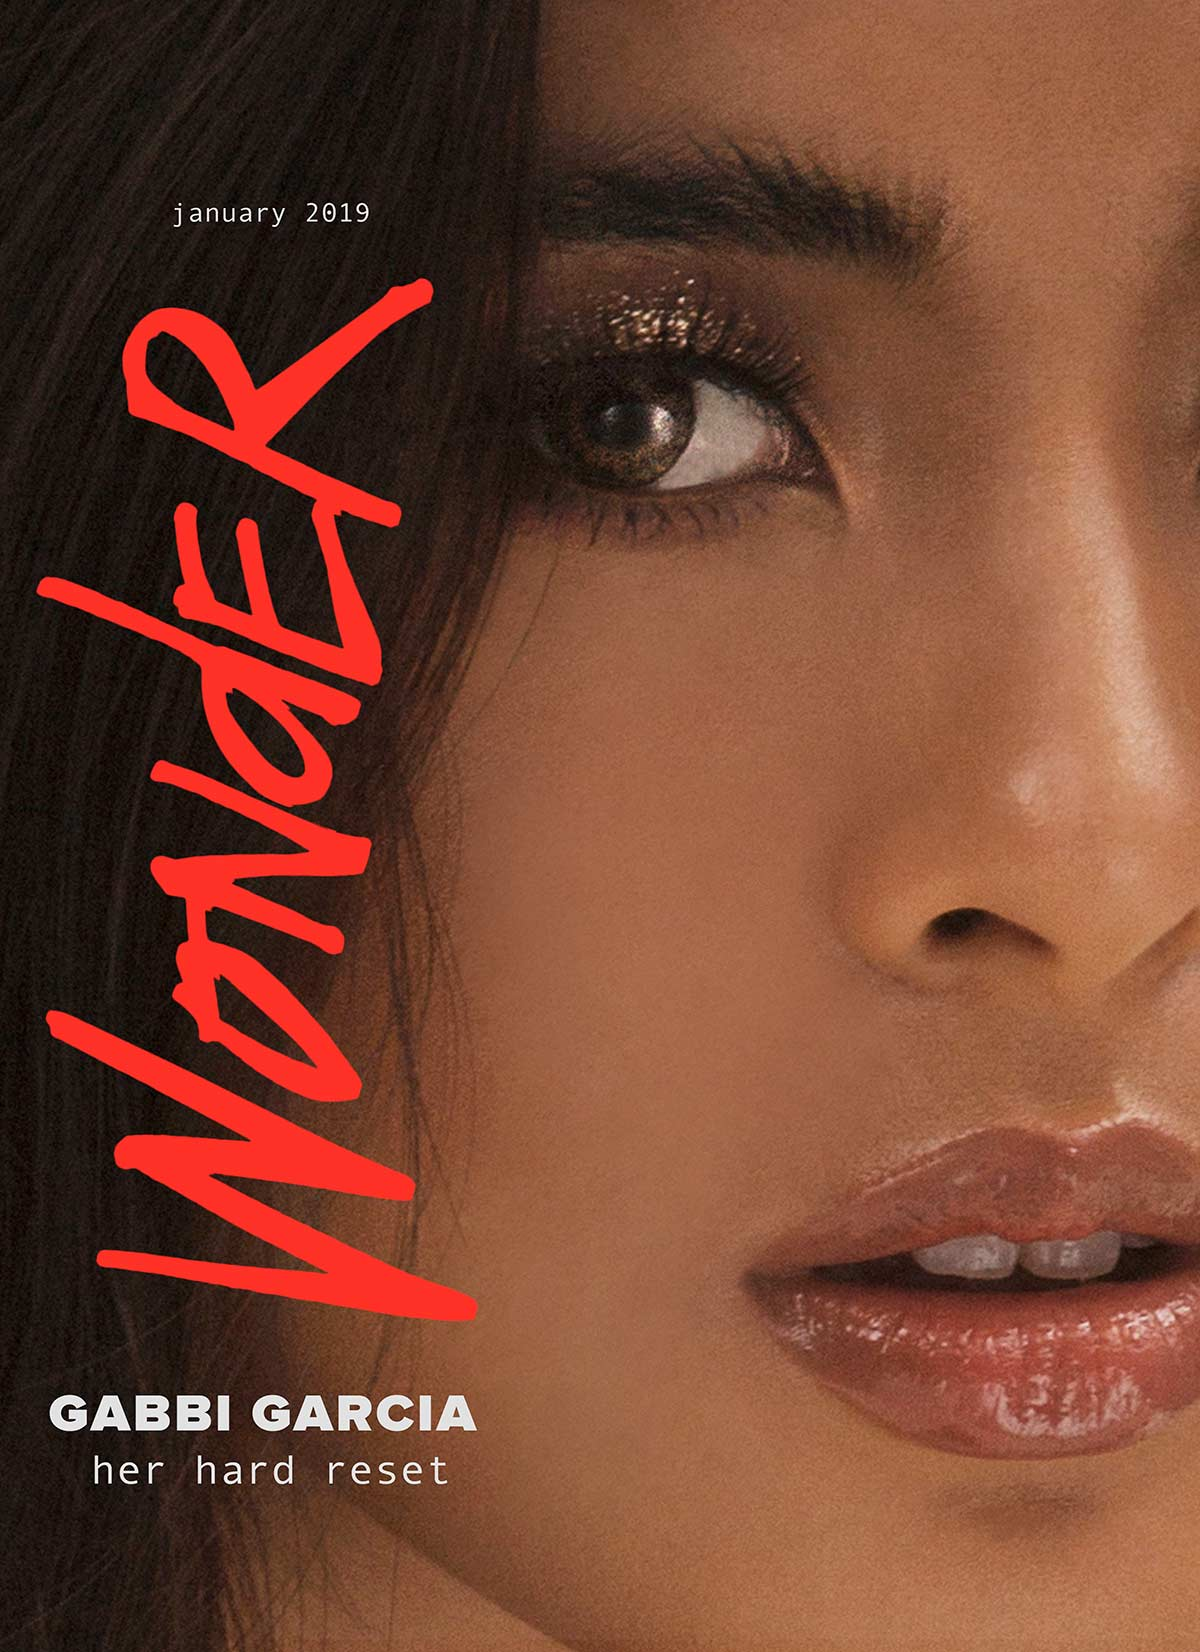 Her Hard Reset: Gabbi Garcia Is Stepping Out In A Big Way This Way